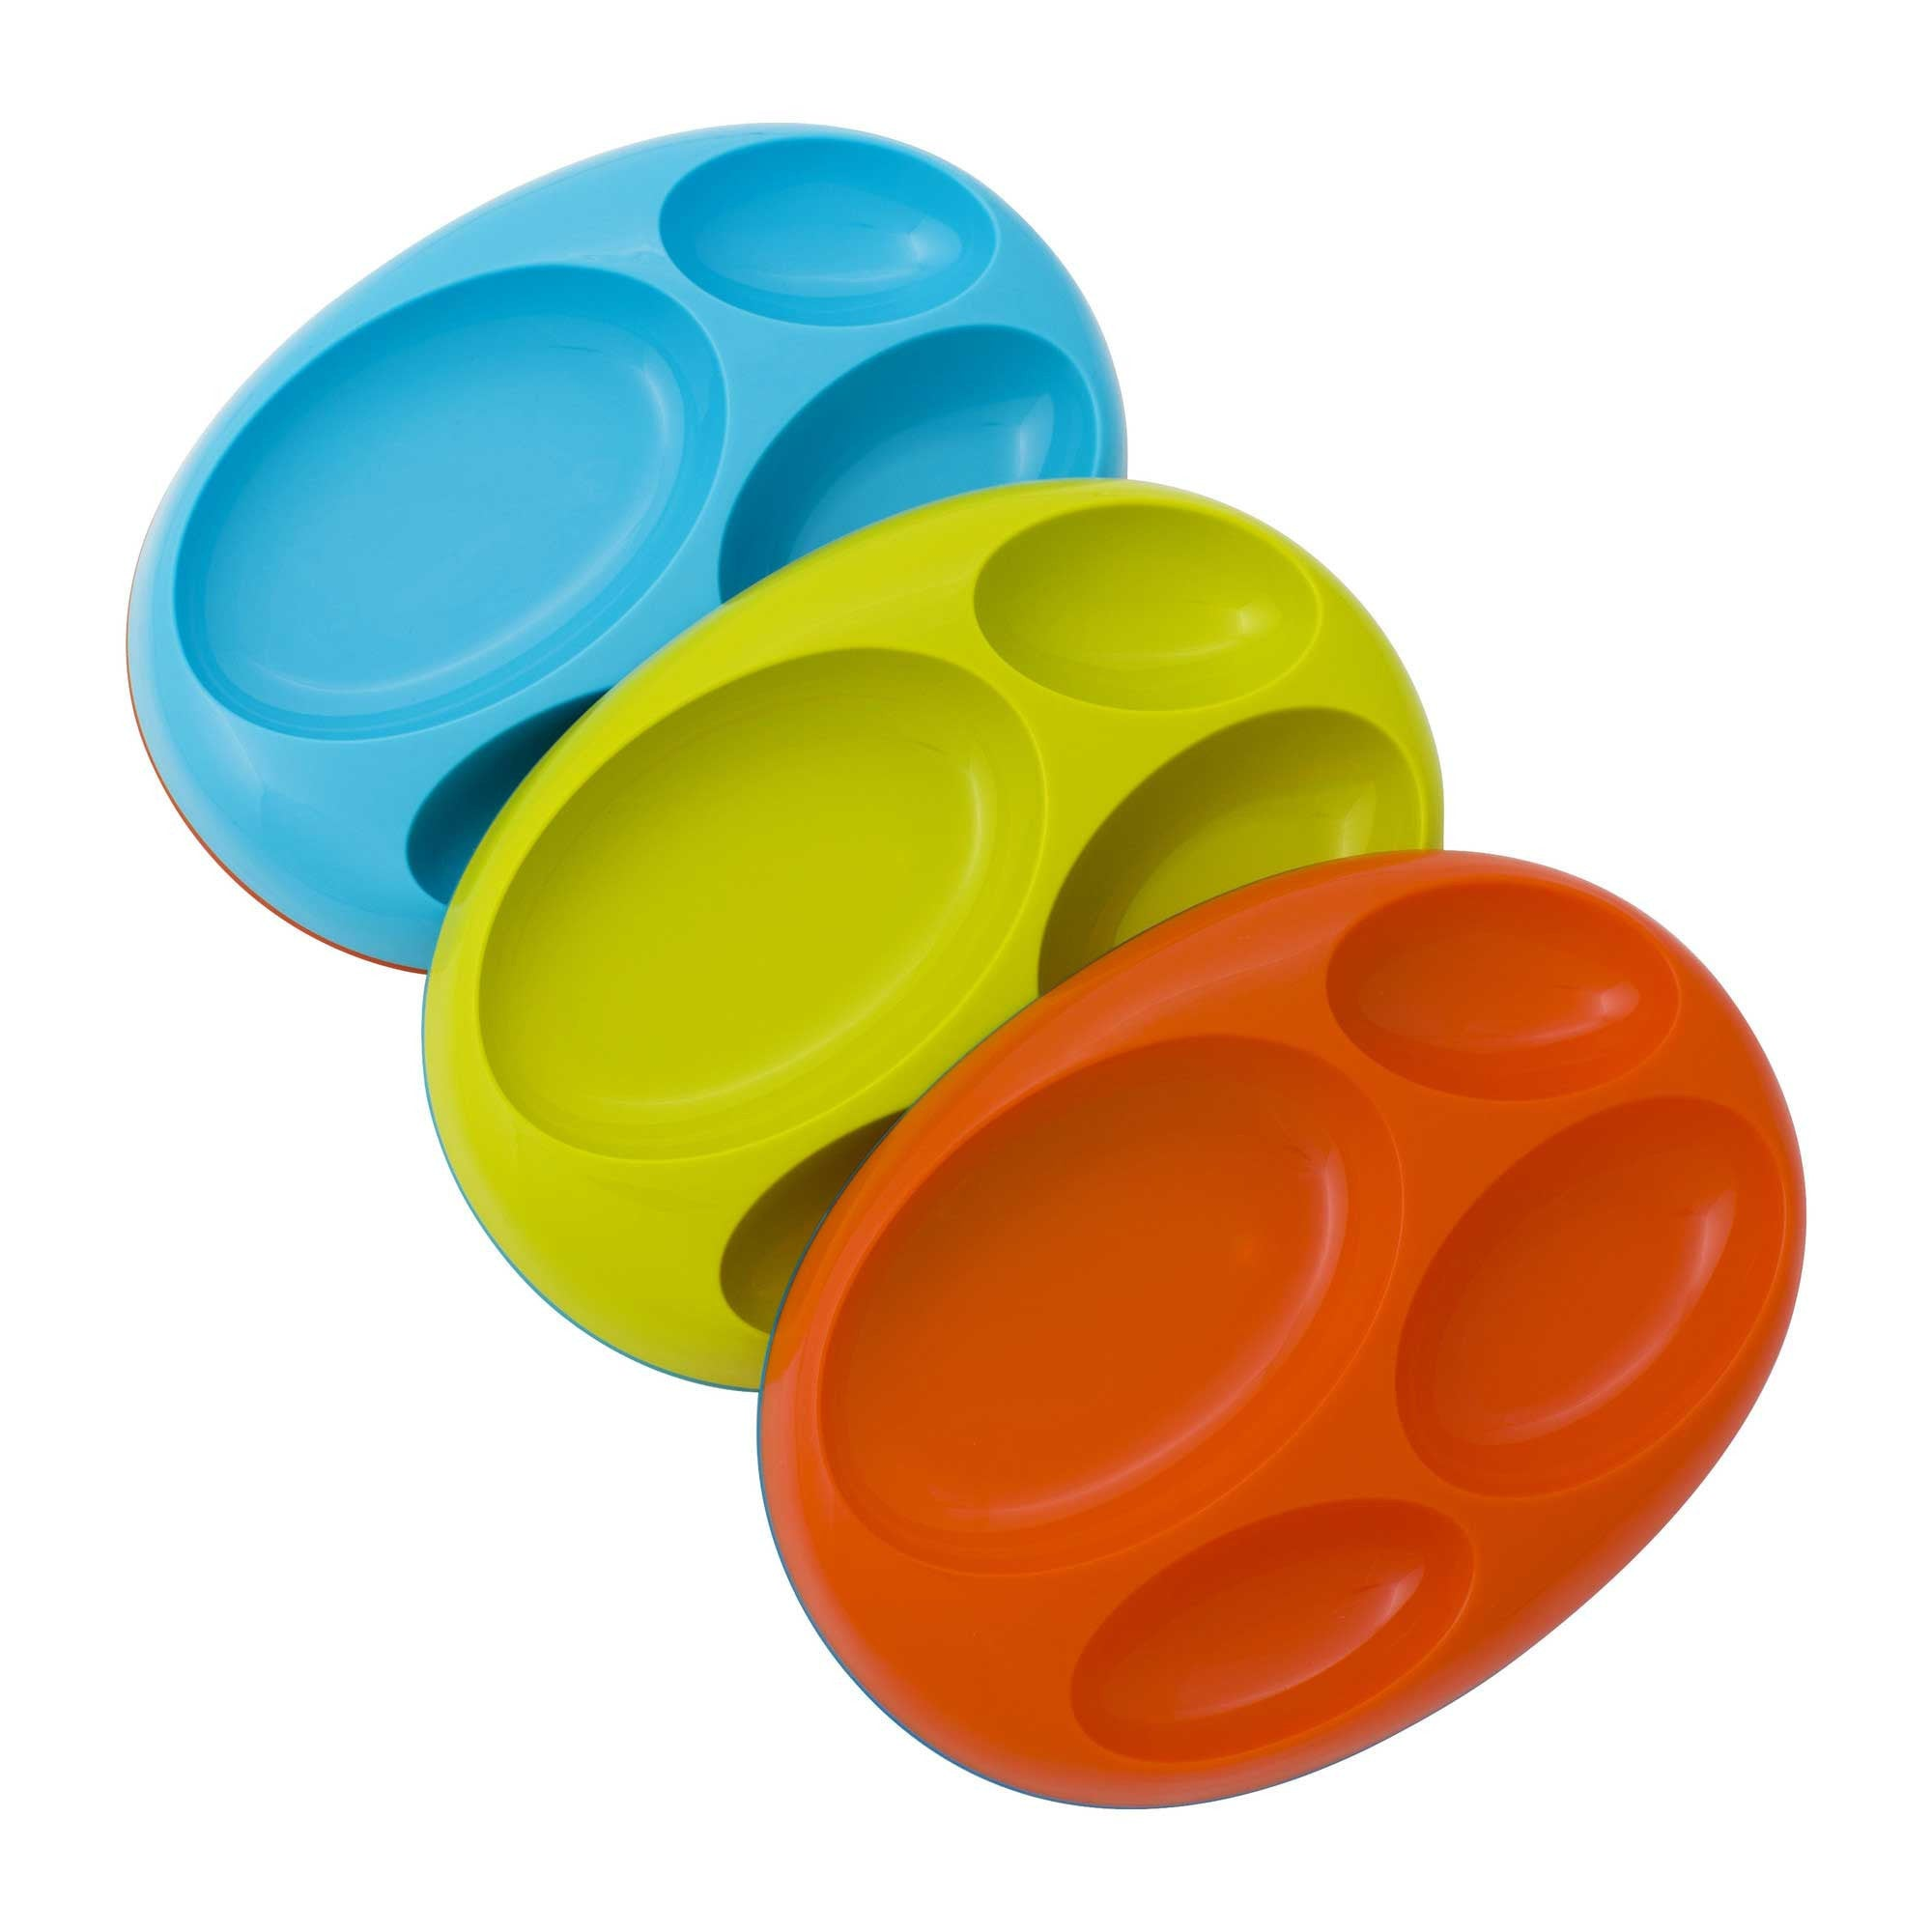 Boon Platter Edgeless Nonskid Divided Plate 3Pk Blue Kiwi Tangerine